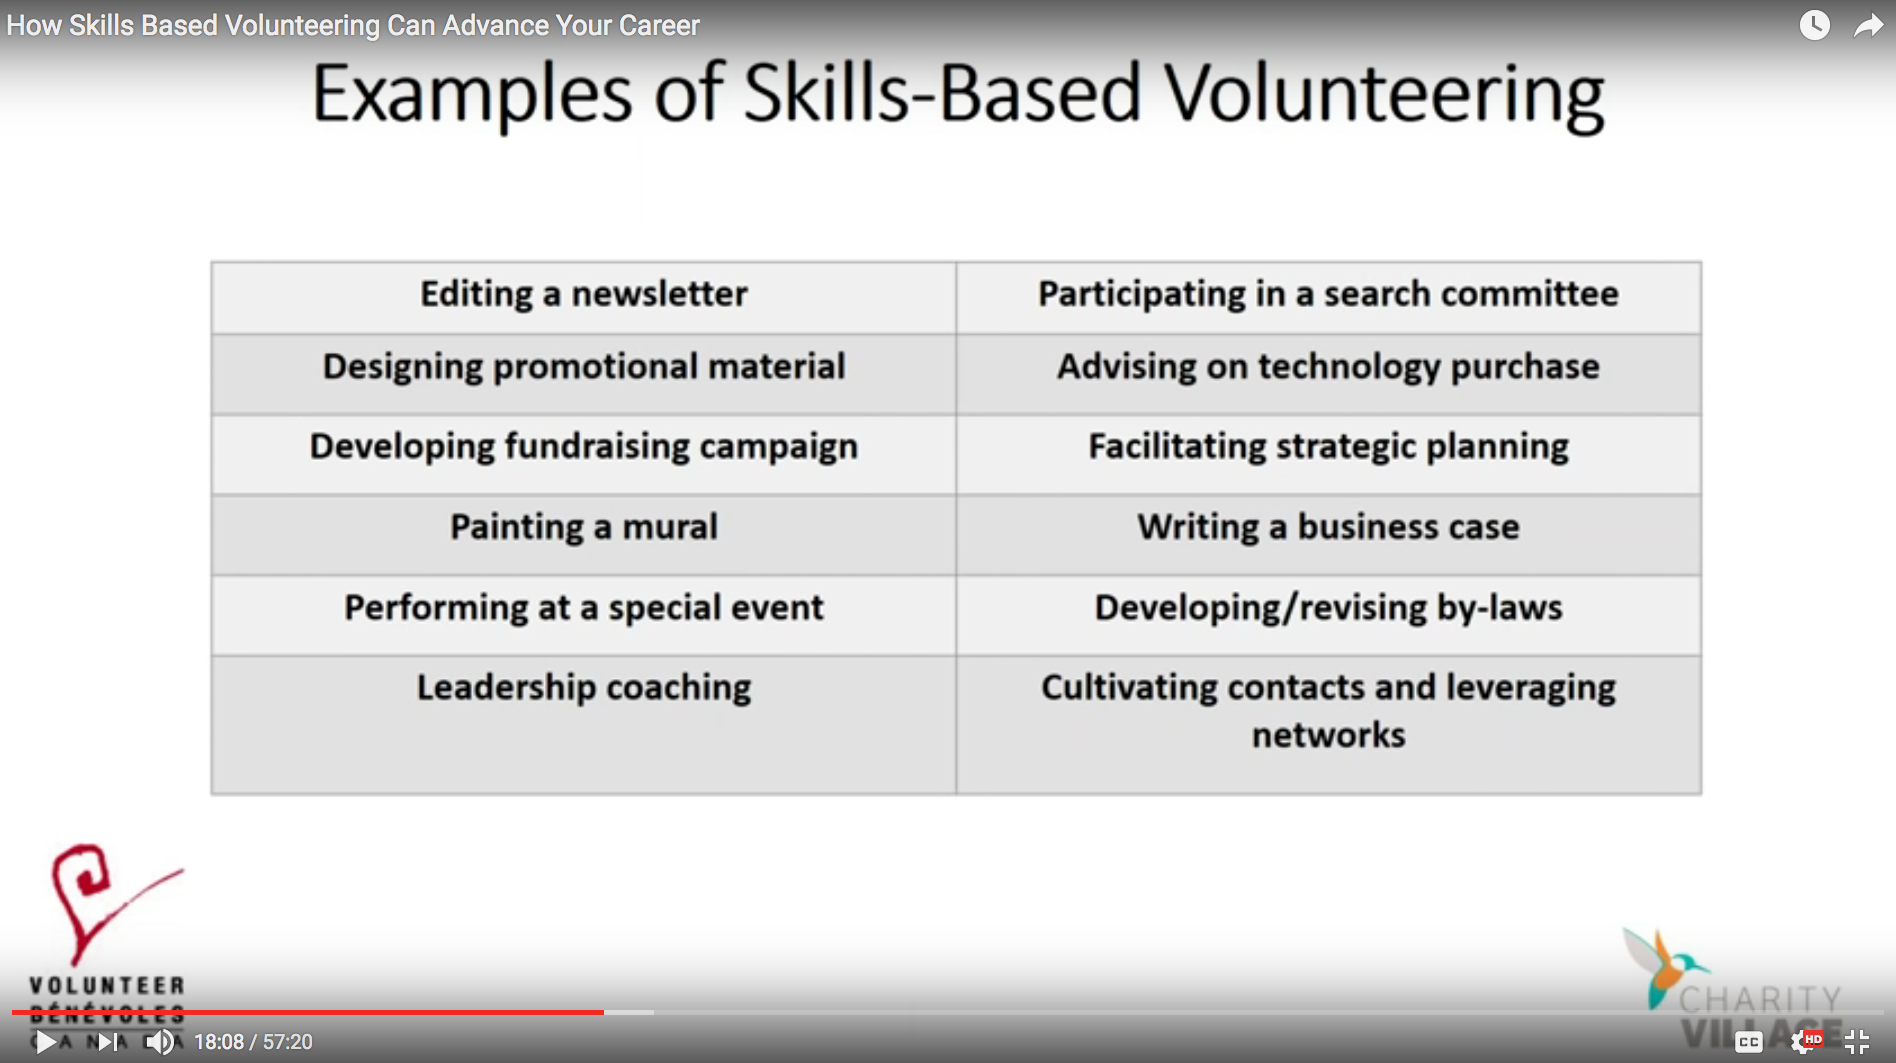 Curious about the webinar? Watch the recorded version here: Charity Village and Volunteer Canada Webinar  How Skills-Based Volunteering Can Advance Your Career